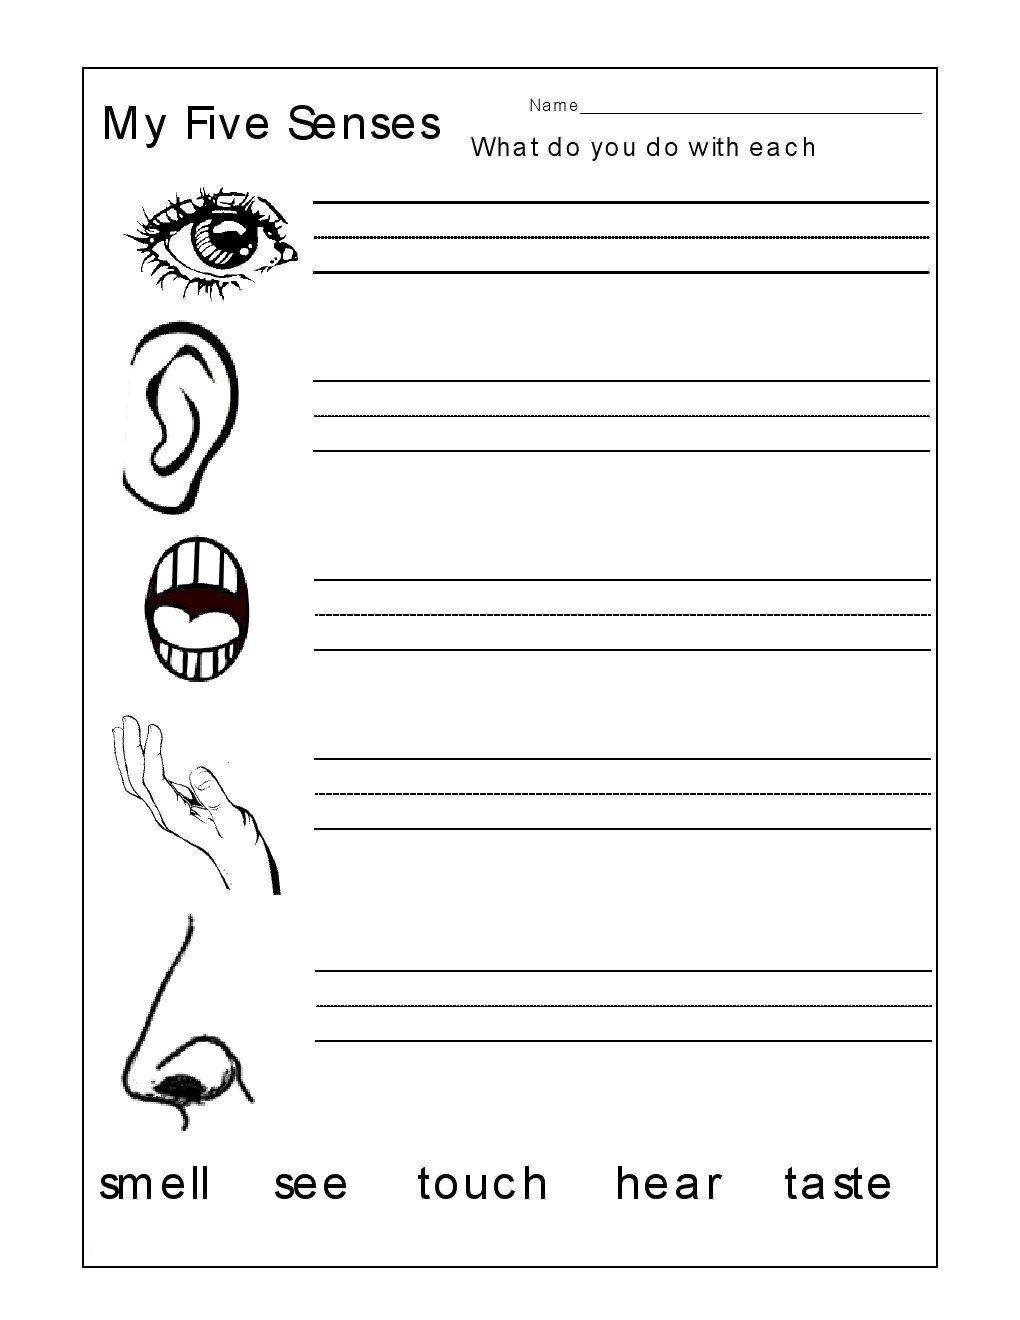 5 Senses Worksheet for Kindergarten Kindergarten Worksheets Kindergarten Worksheets the 5